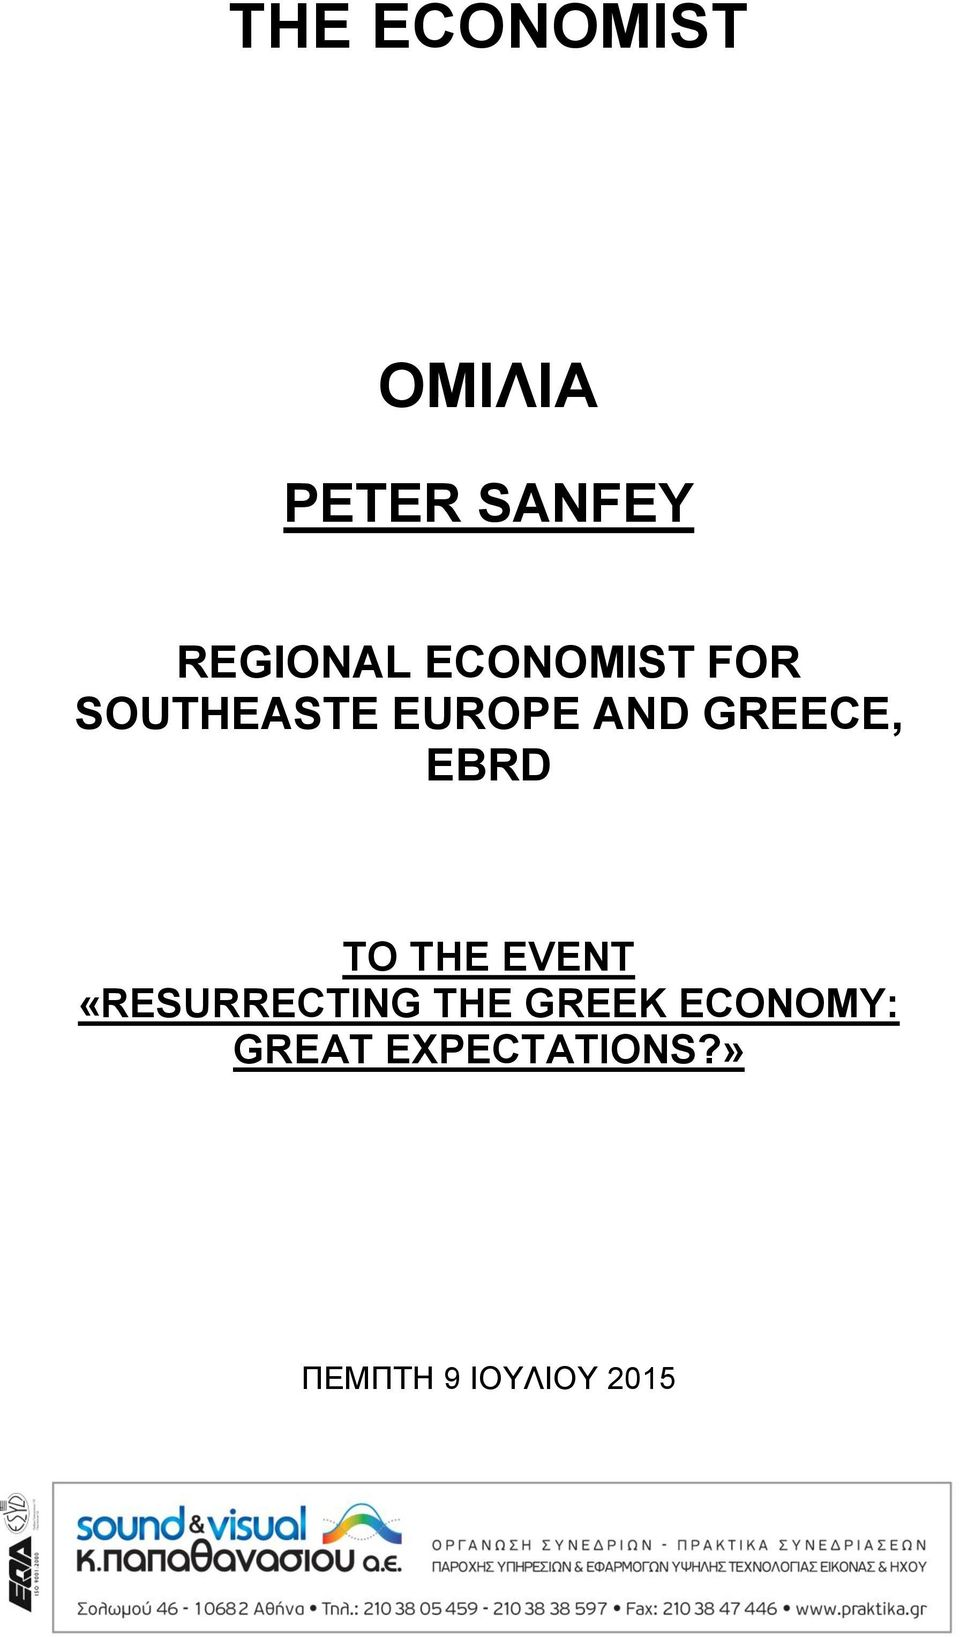 EBRD TO THE EVENT «RESURRECTING THE GREEK